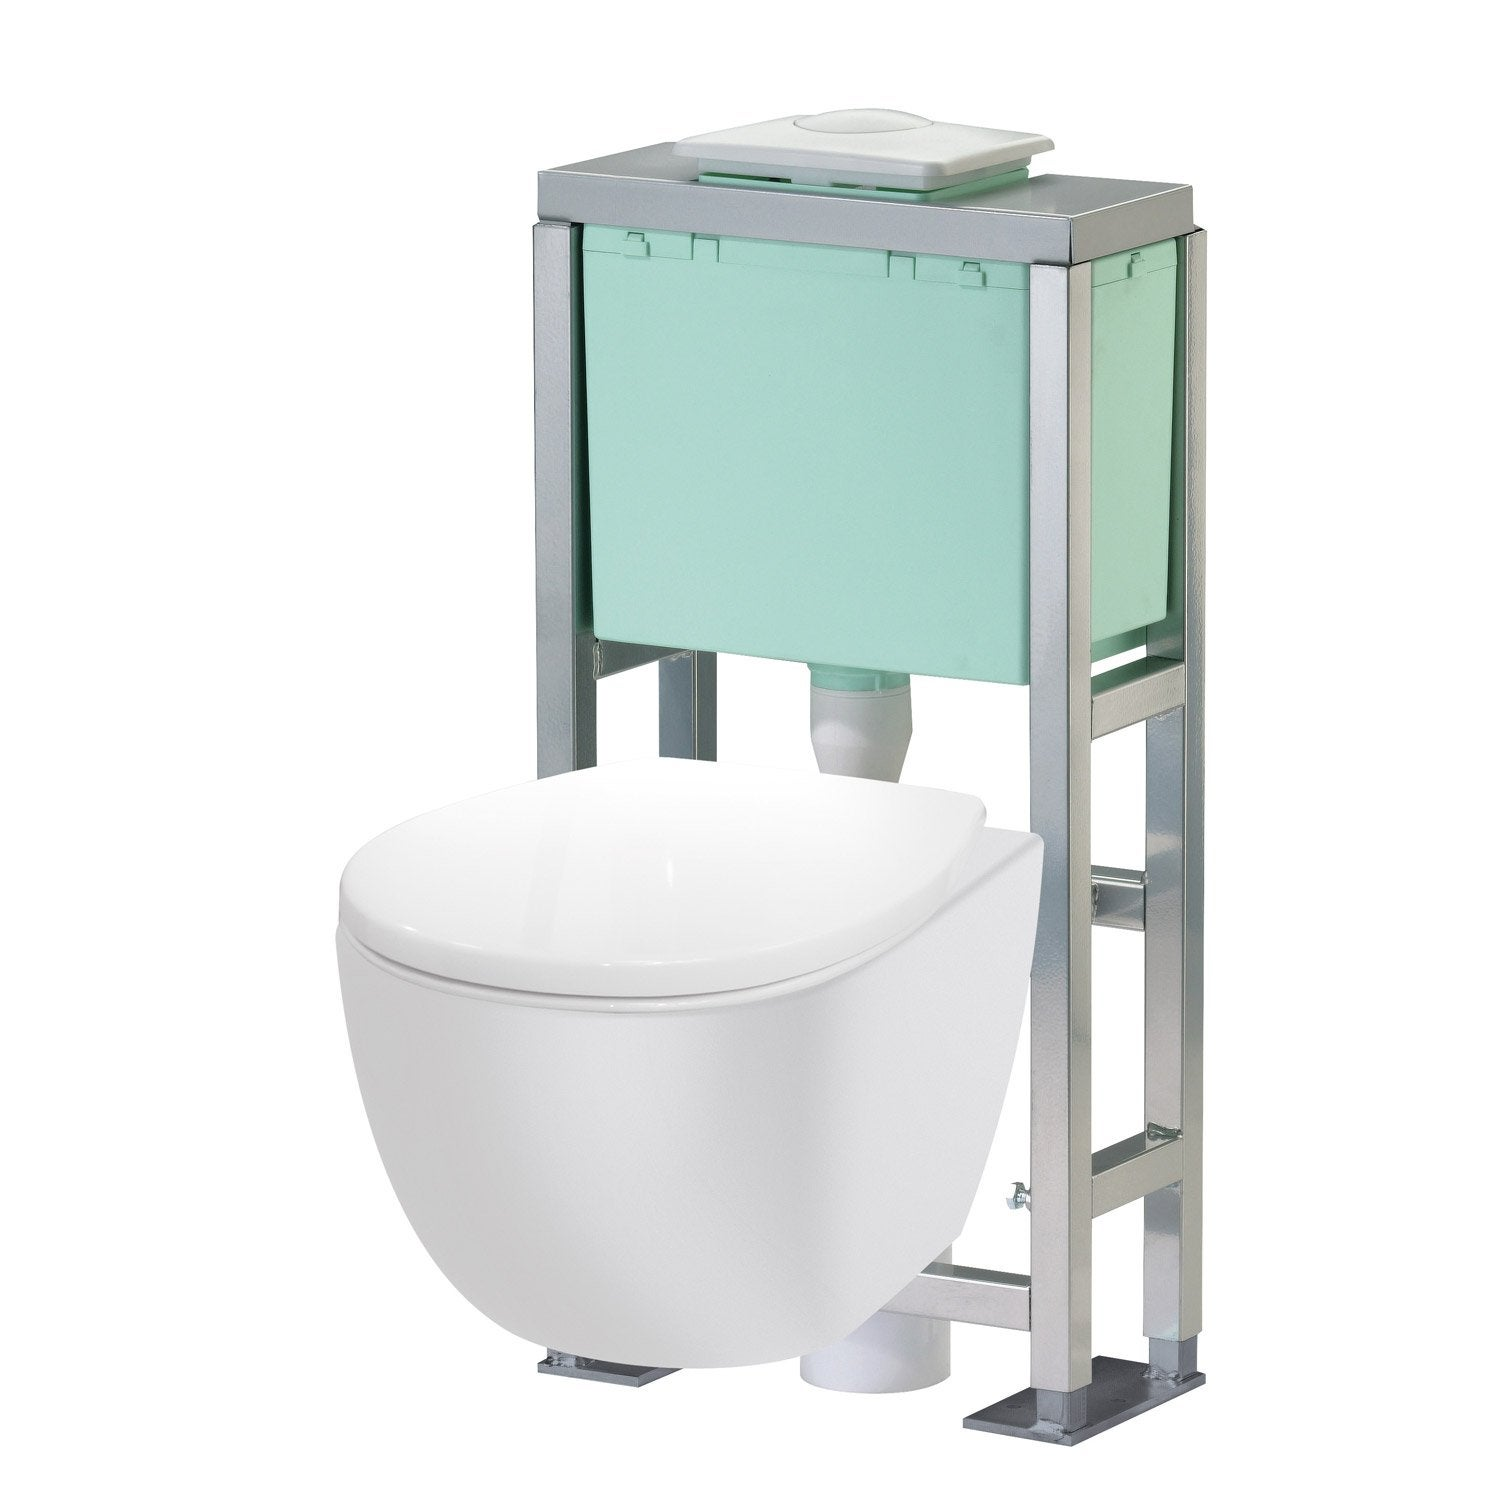 Dimension wc suspendu design d 39 int rieur et id es de meubles for Interieur wc suspendu